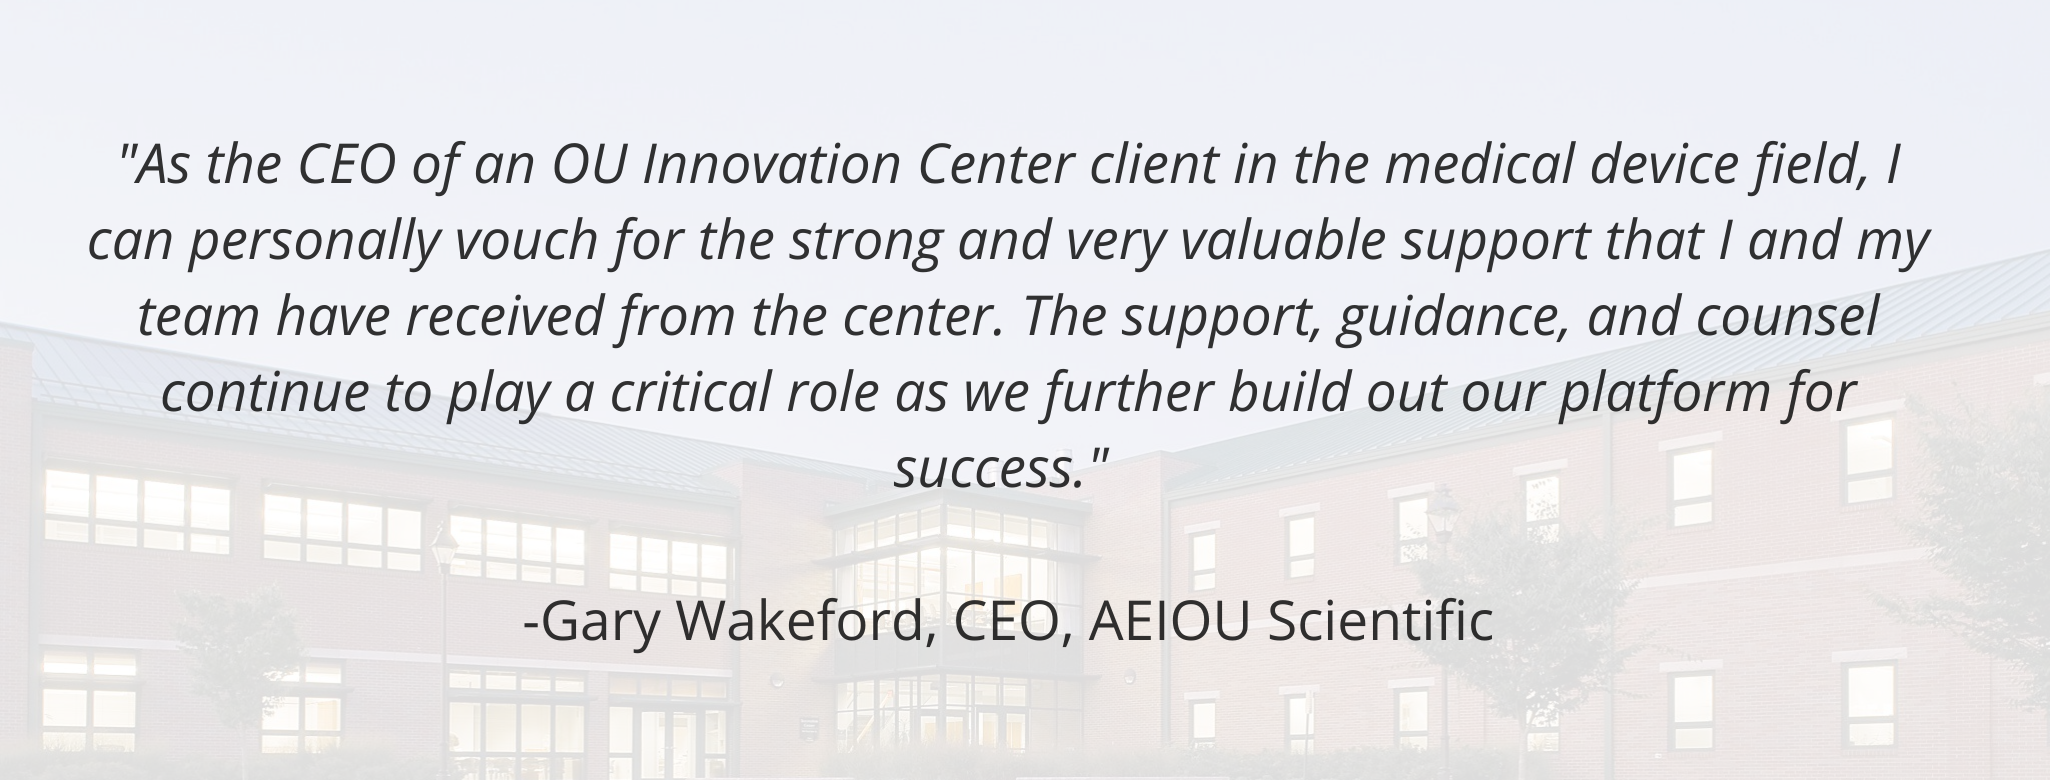 """As the CEO of an OU Innovation Center client in the medical device field, I can personally vouch for the strong and very valuable support that I and my team have received from the center. The support, guidance, and counsel continue to play a critical role as we further build out our platform for success.""   -Gary Wakeford, CEO, AEIOU Scientific"